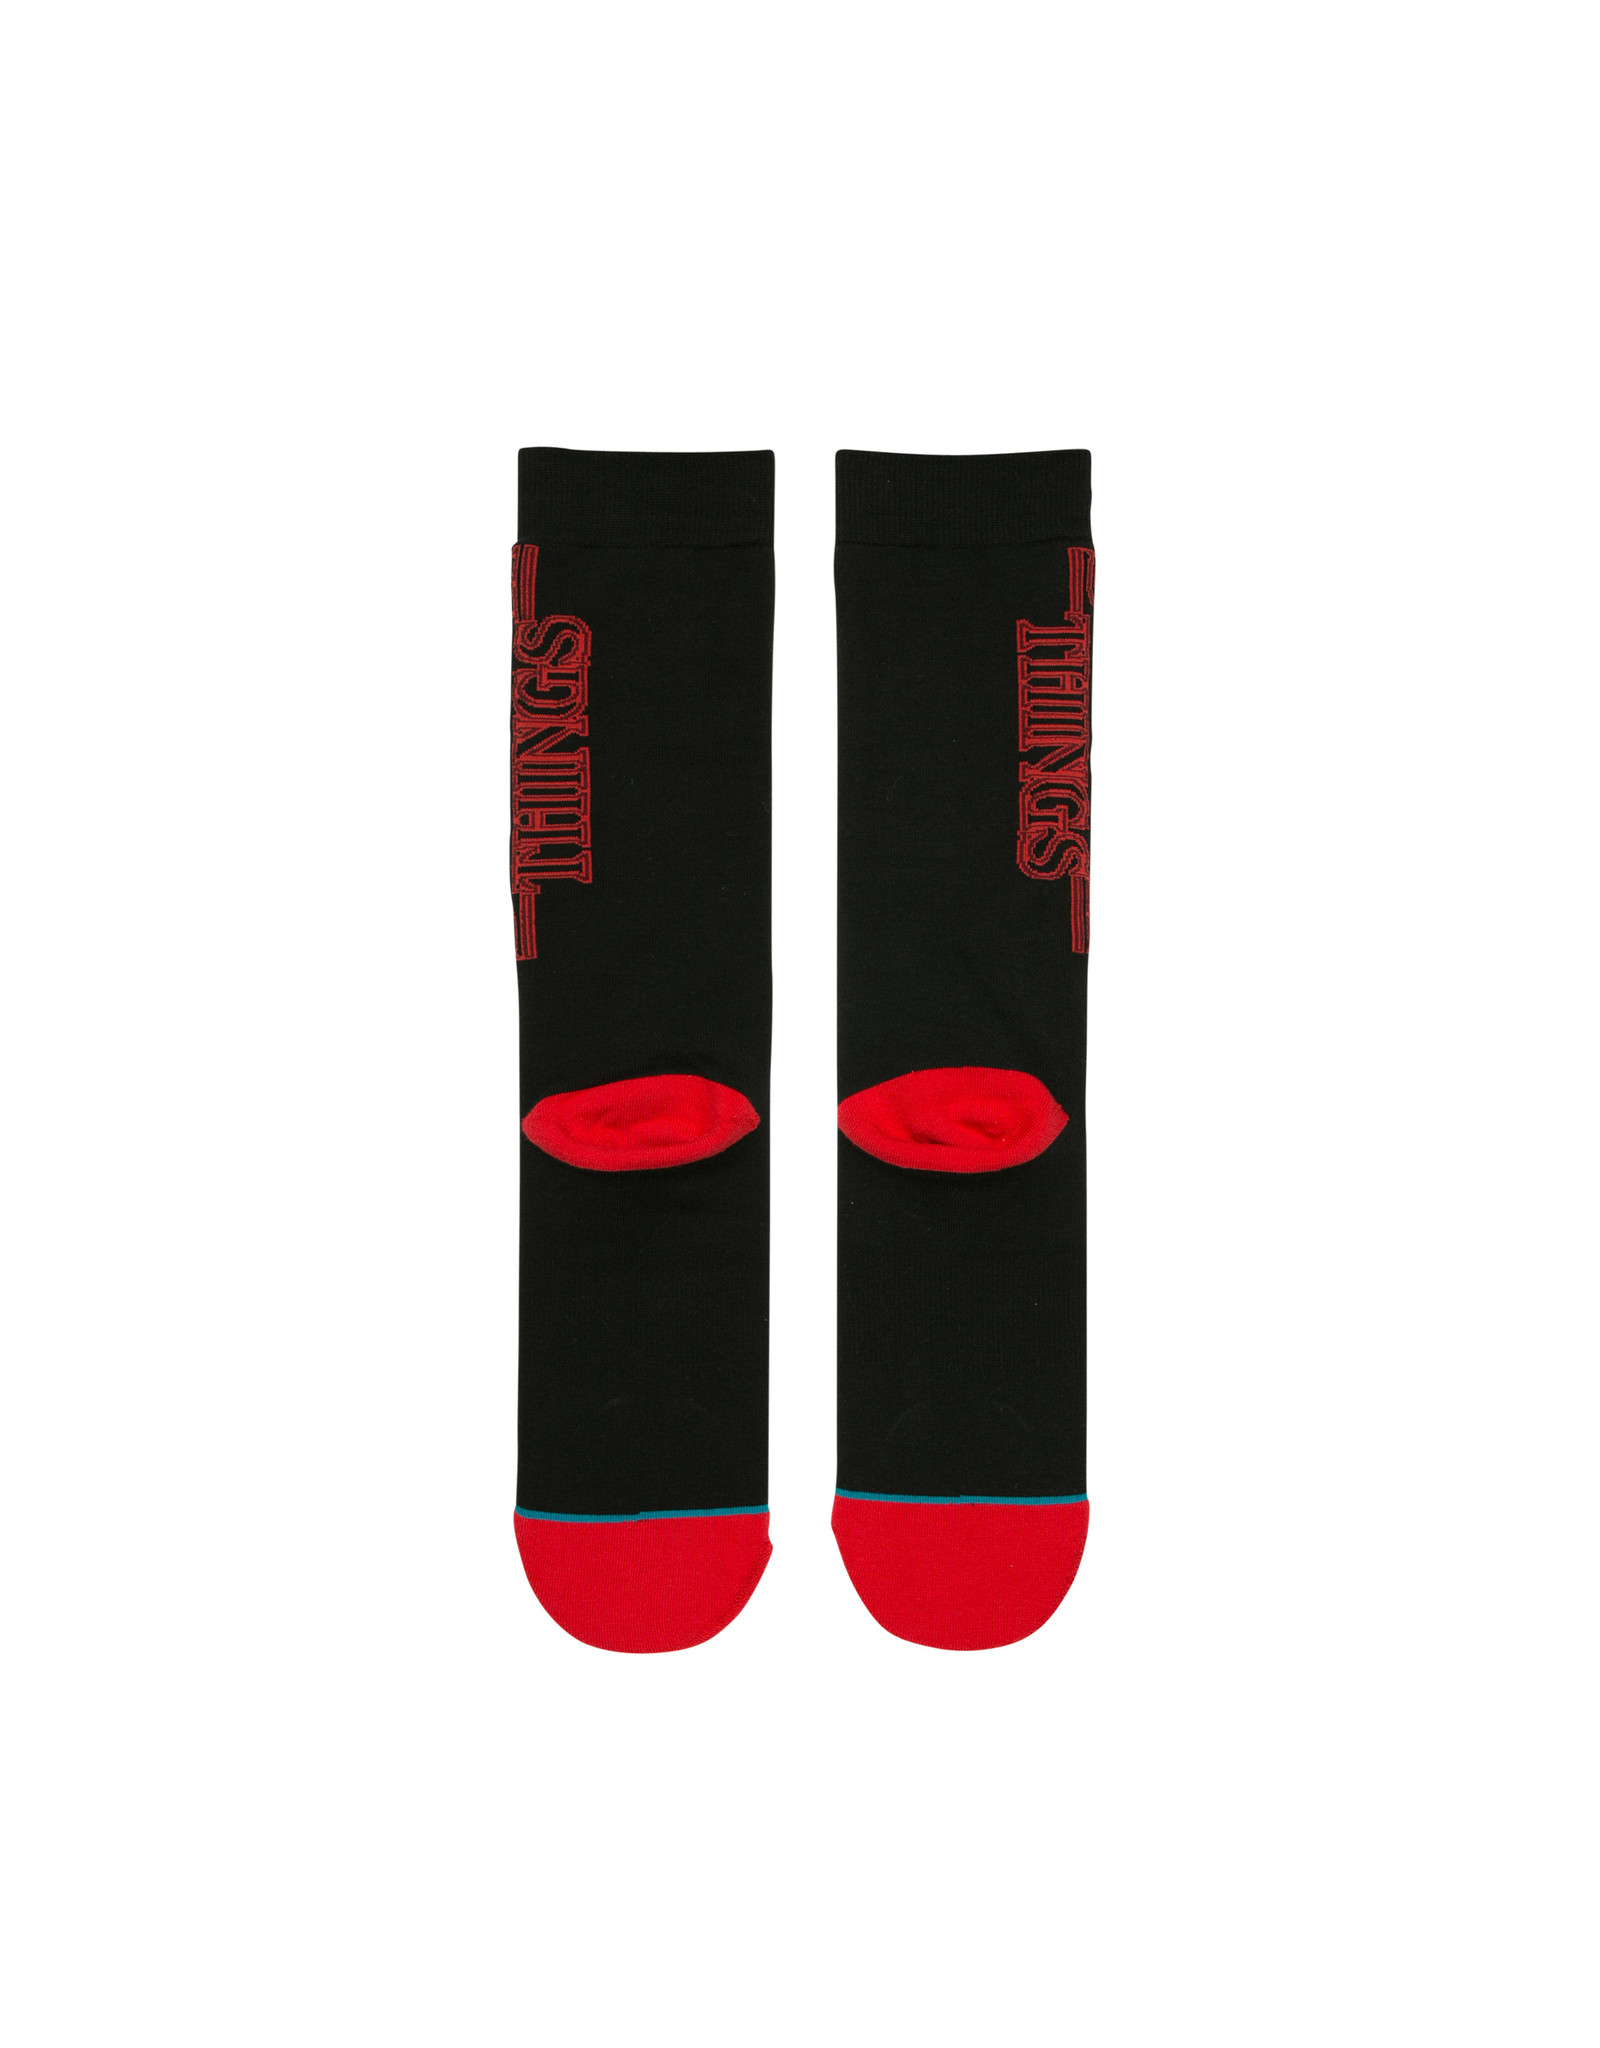 STANCE STANCE - STRANGER THINGS - BLK -